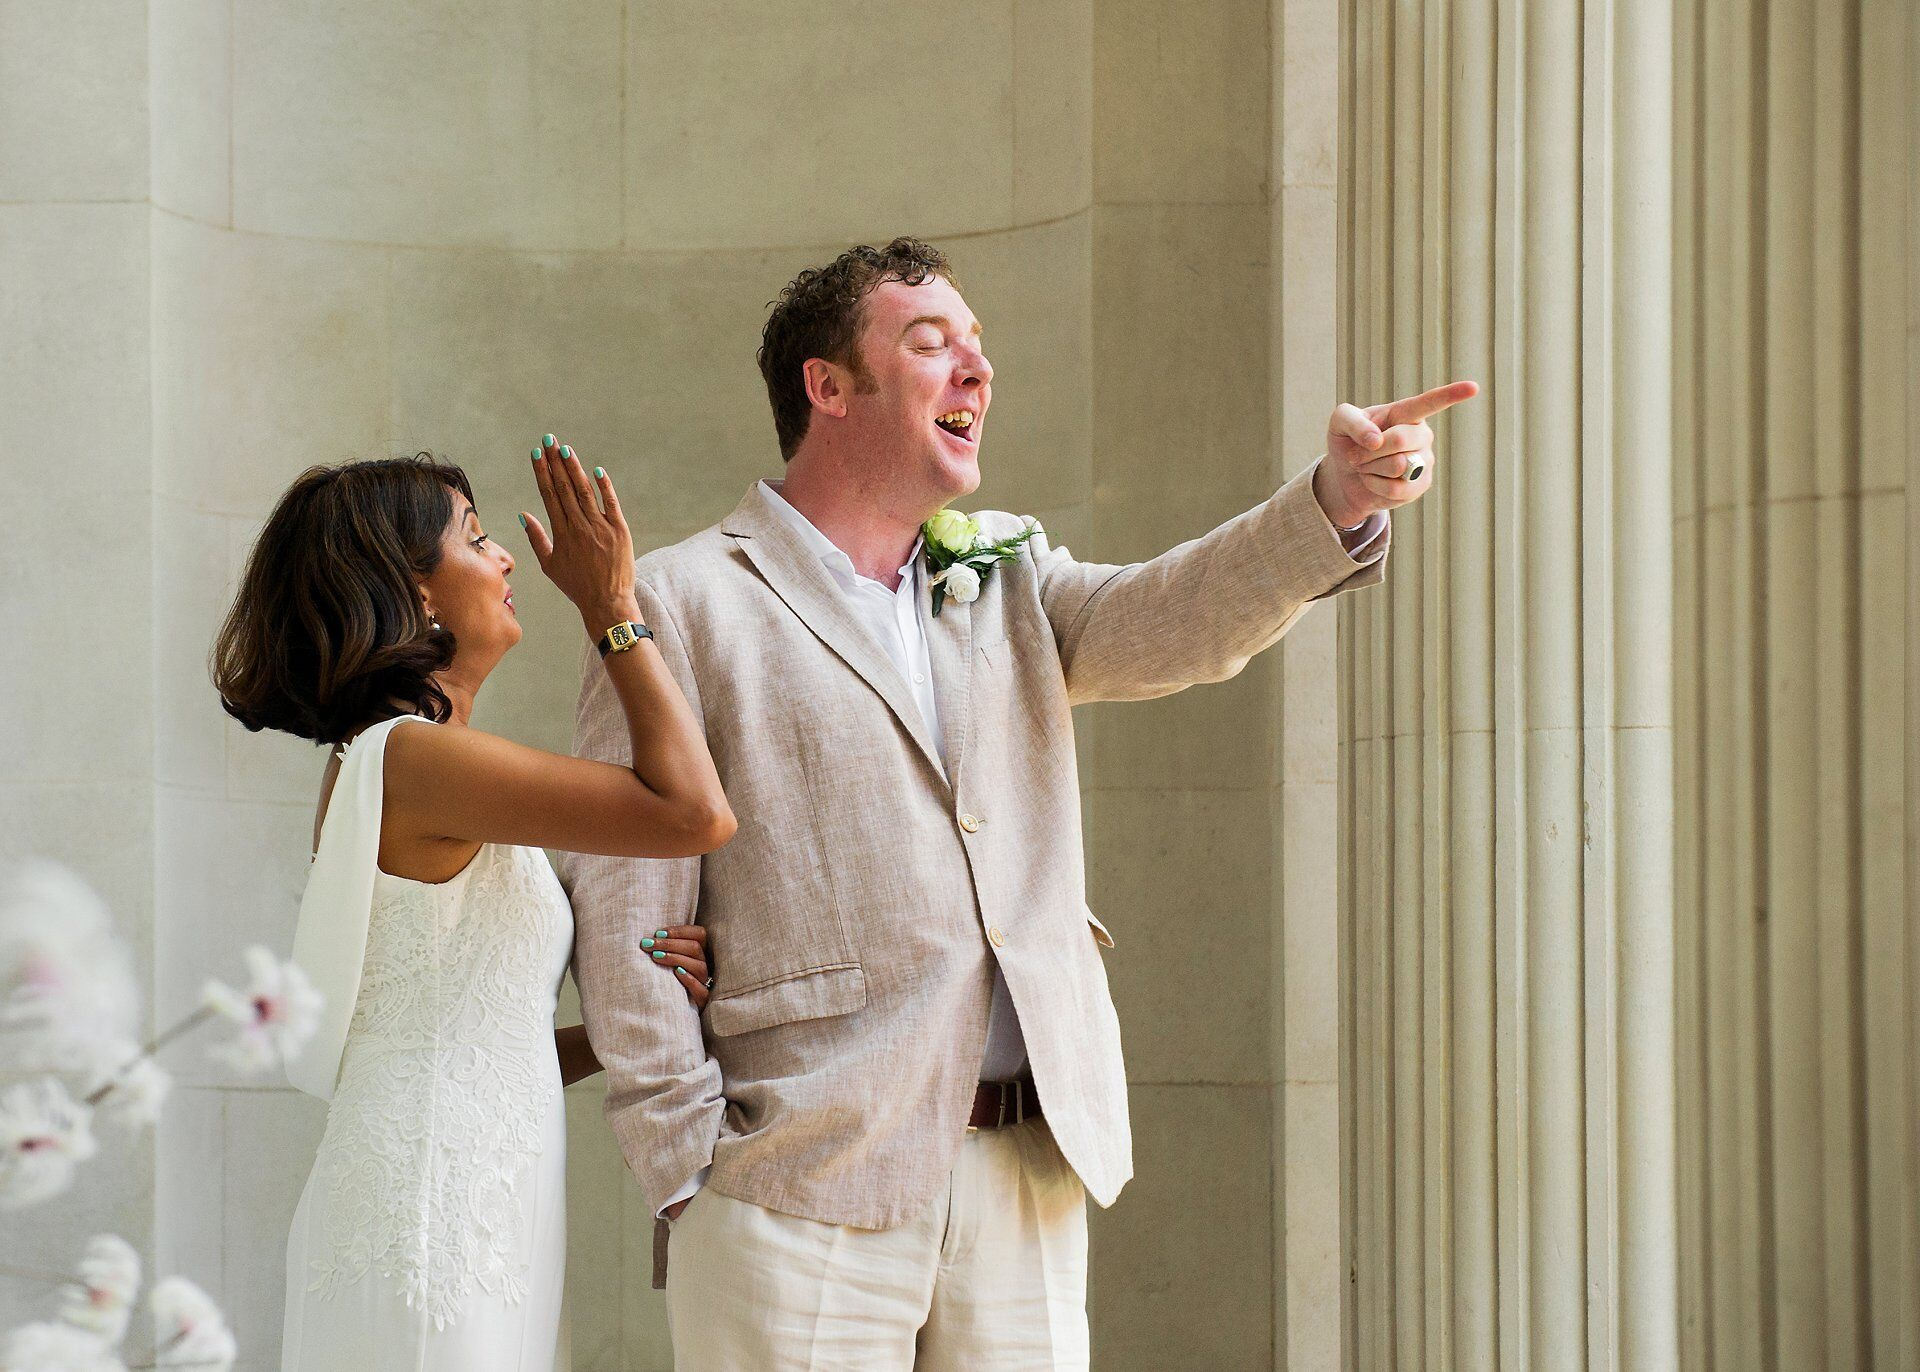 world cup quarter final wedding - england score their first goal during wedding photographs at old marylebone town hall courtesy of harry maguire